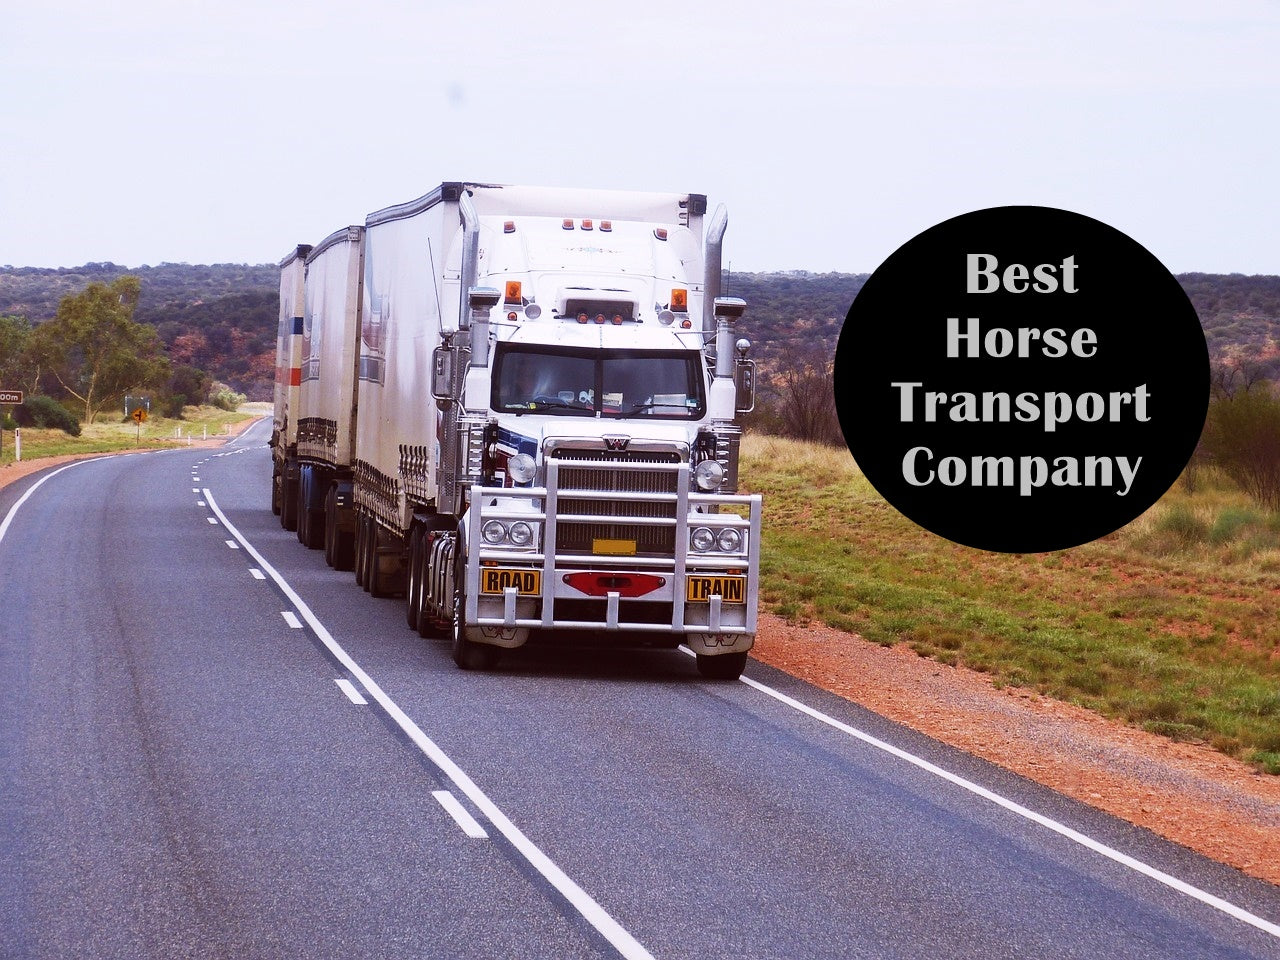 Luxurious Experience With Southern Cross Horse Transport